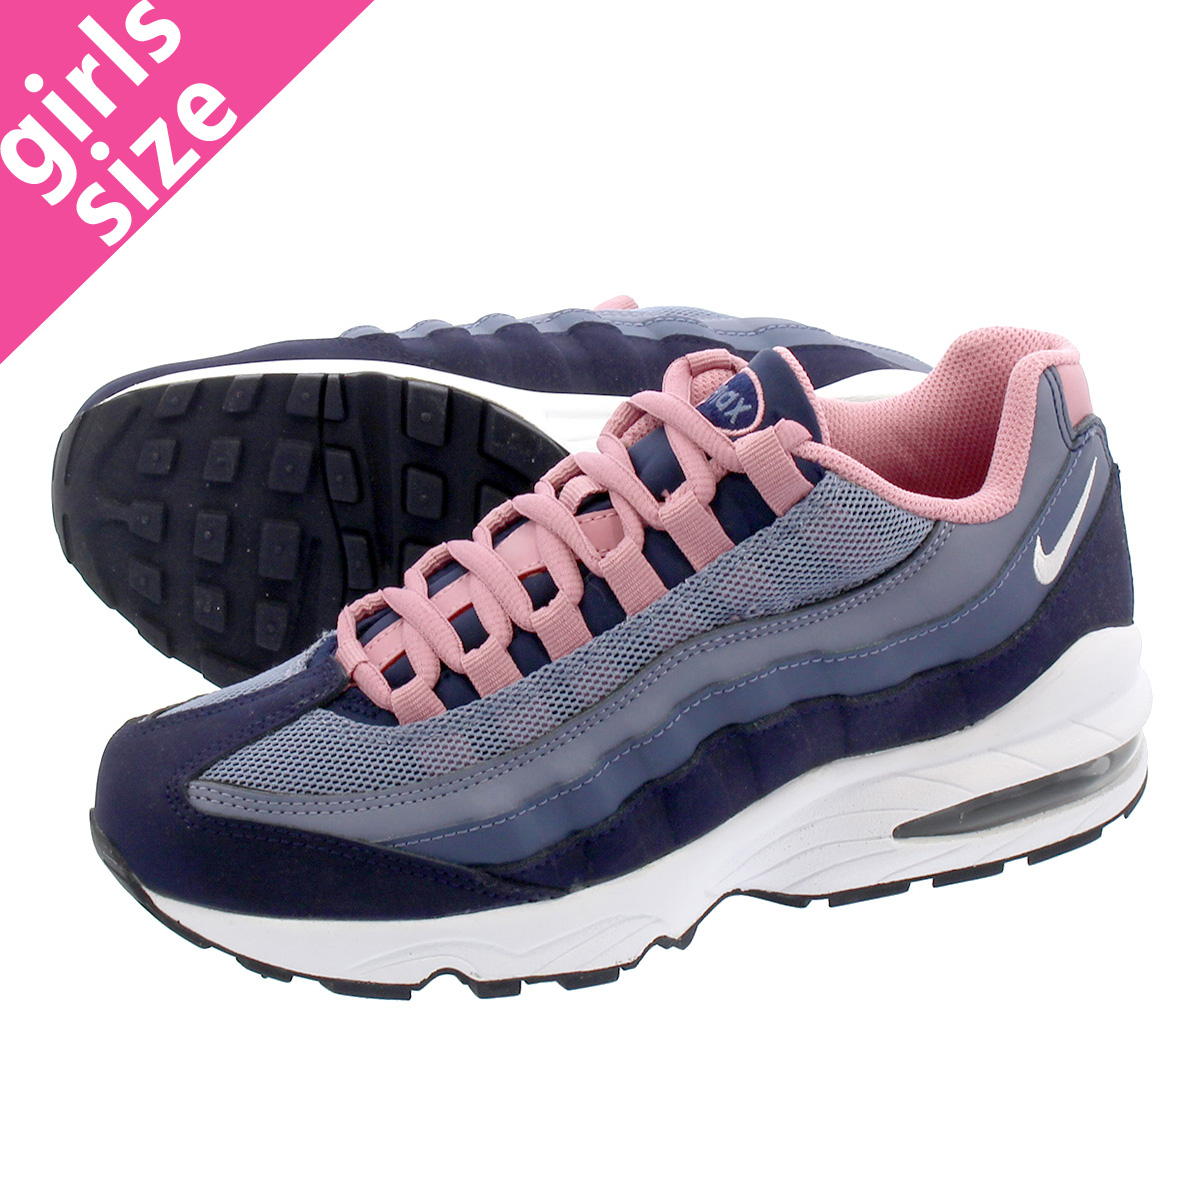 d54e066ff7 LOWTEX PLUS: NIKE AIR MAX 95 LE GS Kie Ney AMAX 95 leather GS  NAVY/BLUE/WHITE/PINK 310,830-402 | Rakuten Global Market